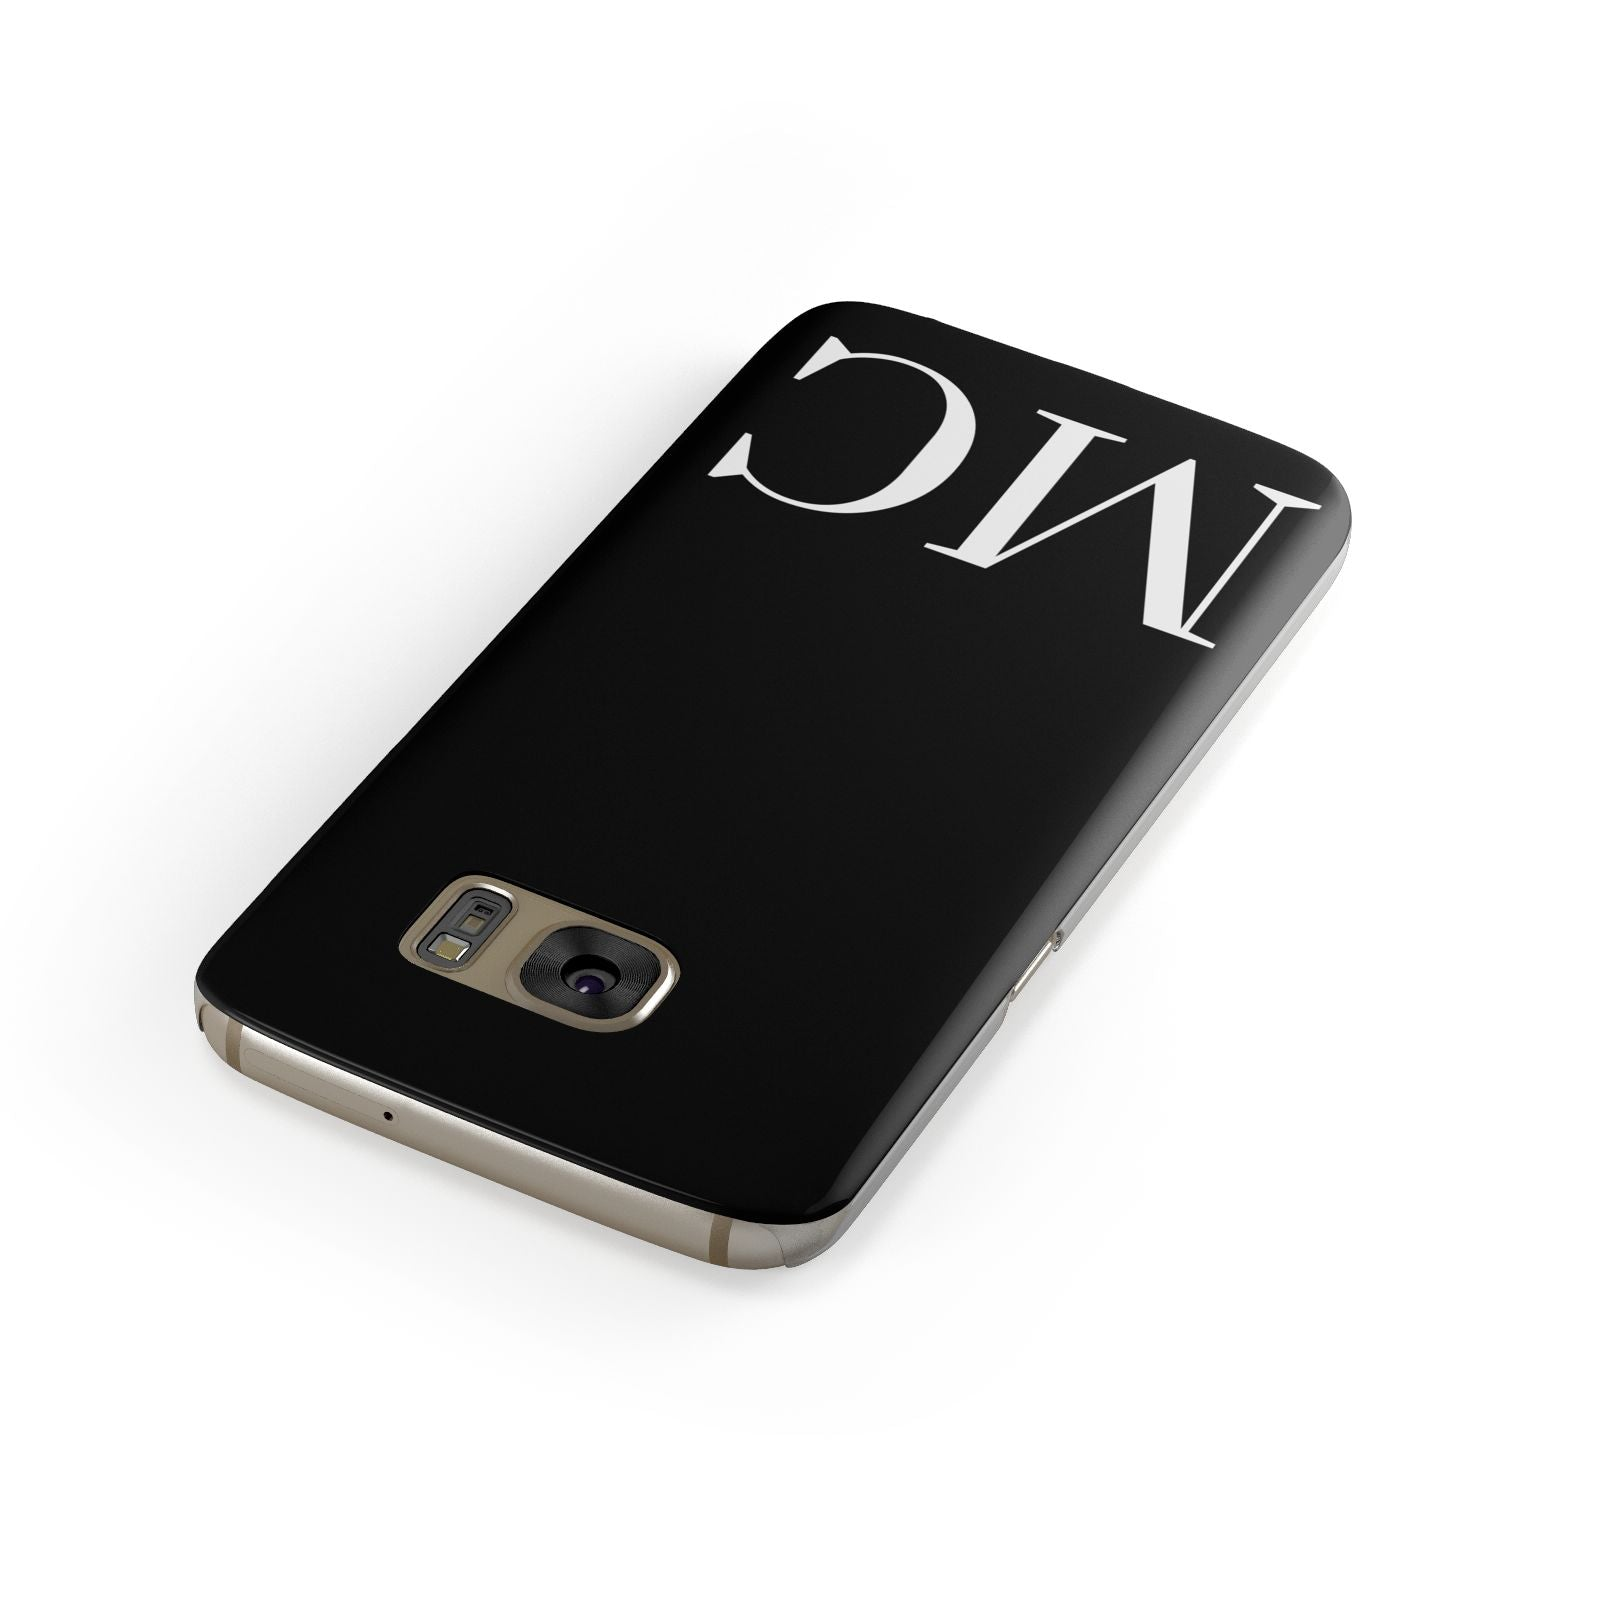 Initials Personalised 1 Samsung Galaxy Case Front Close Up